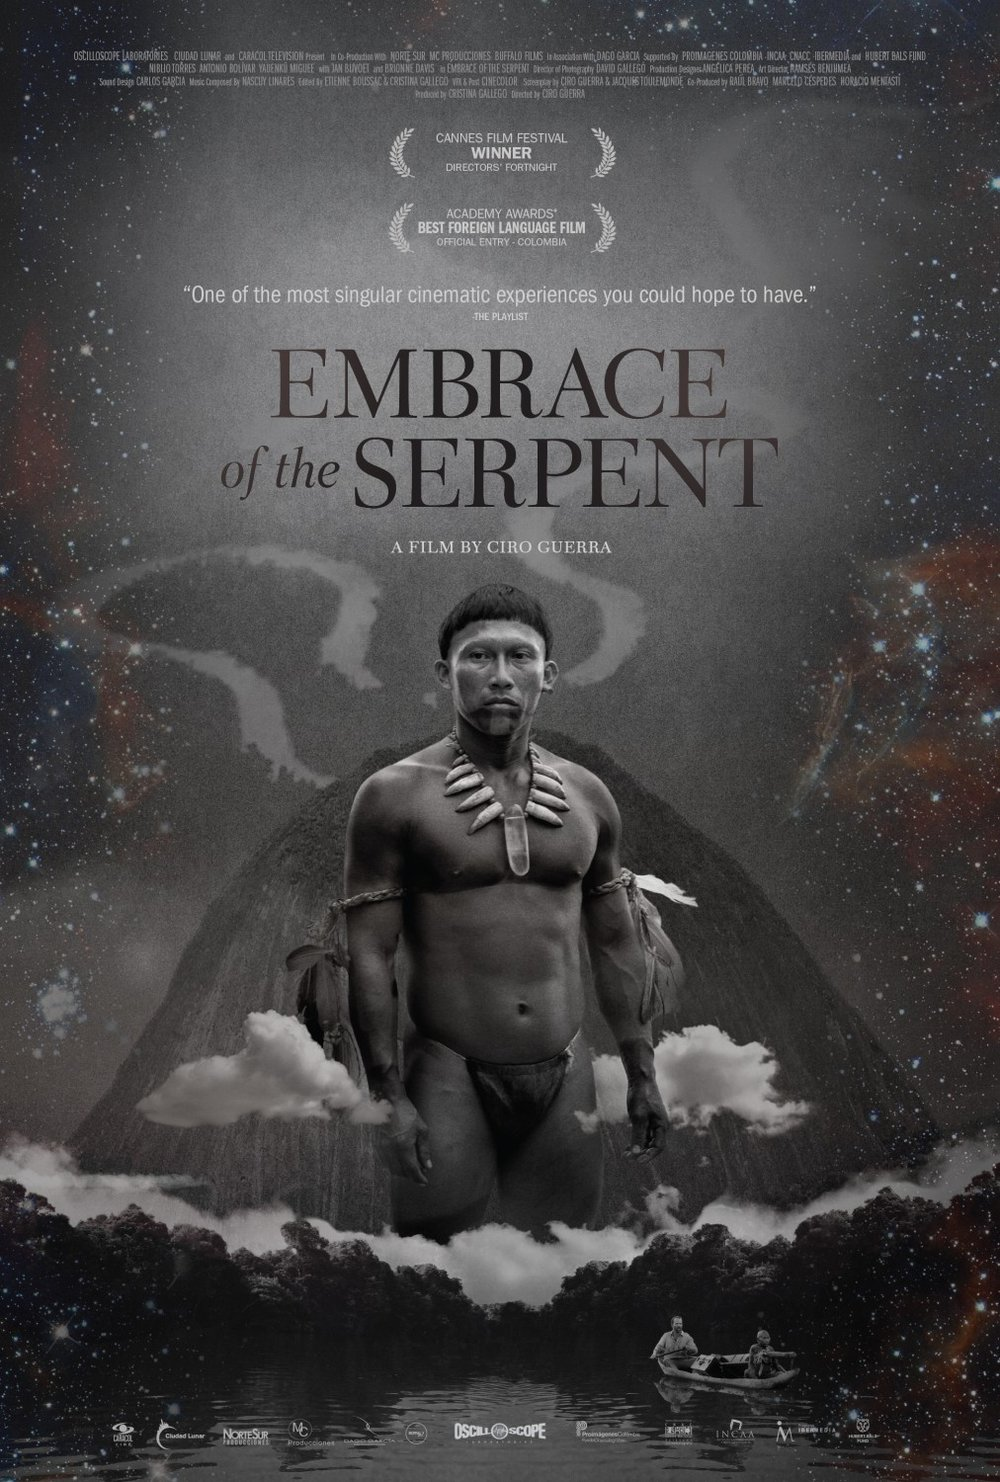 Embrace of the Serpent (Artist unknown)